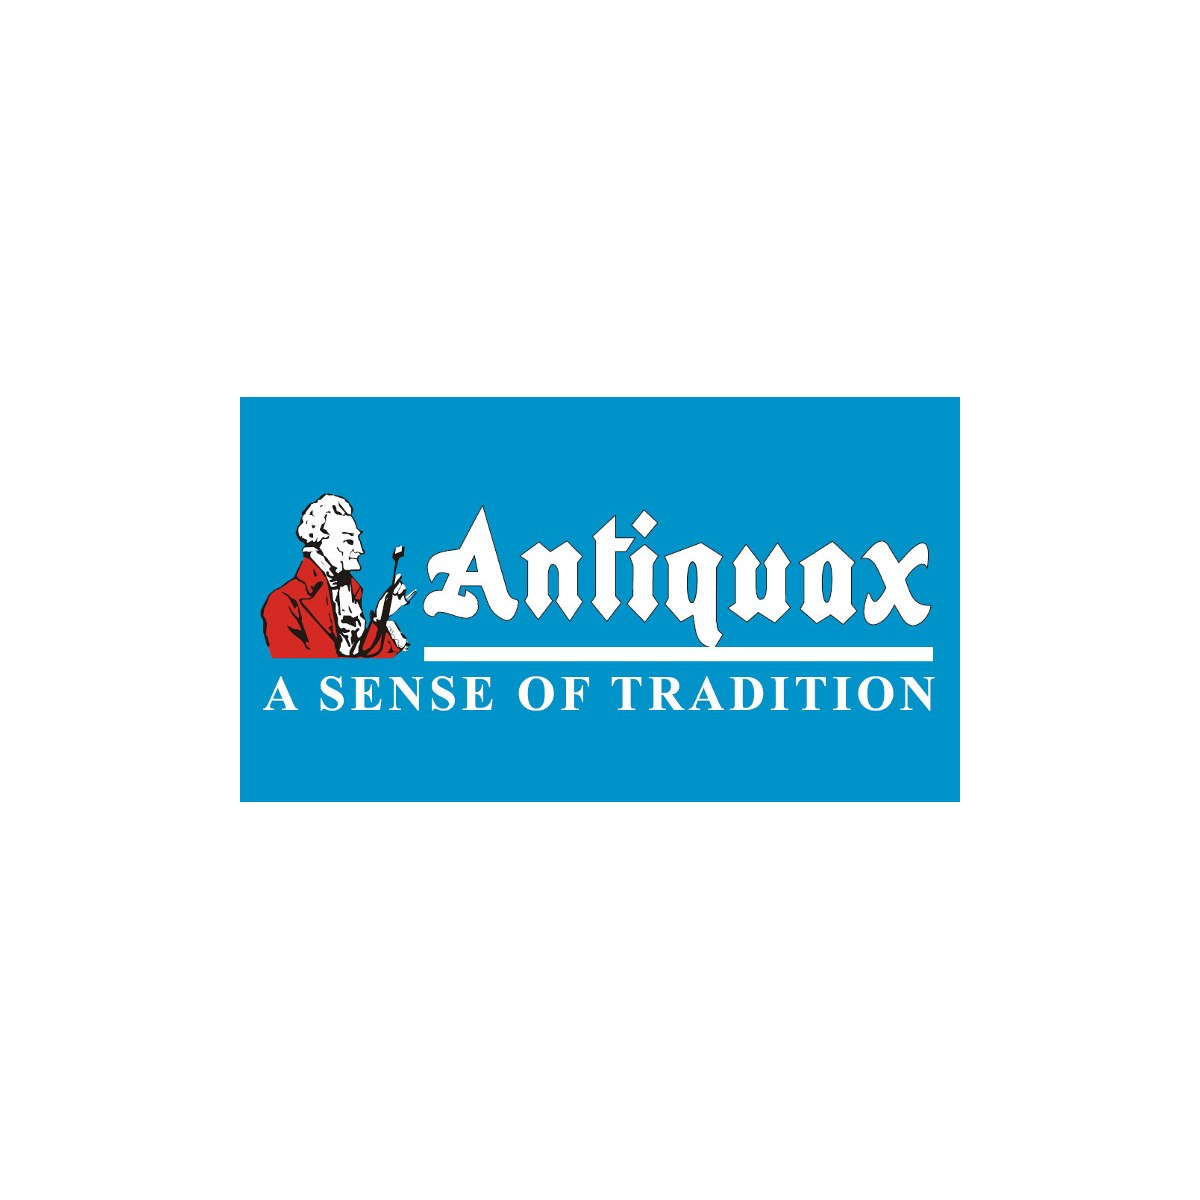 Where to buy Antiquax Products